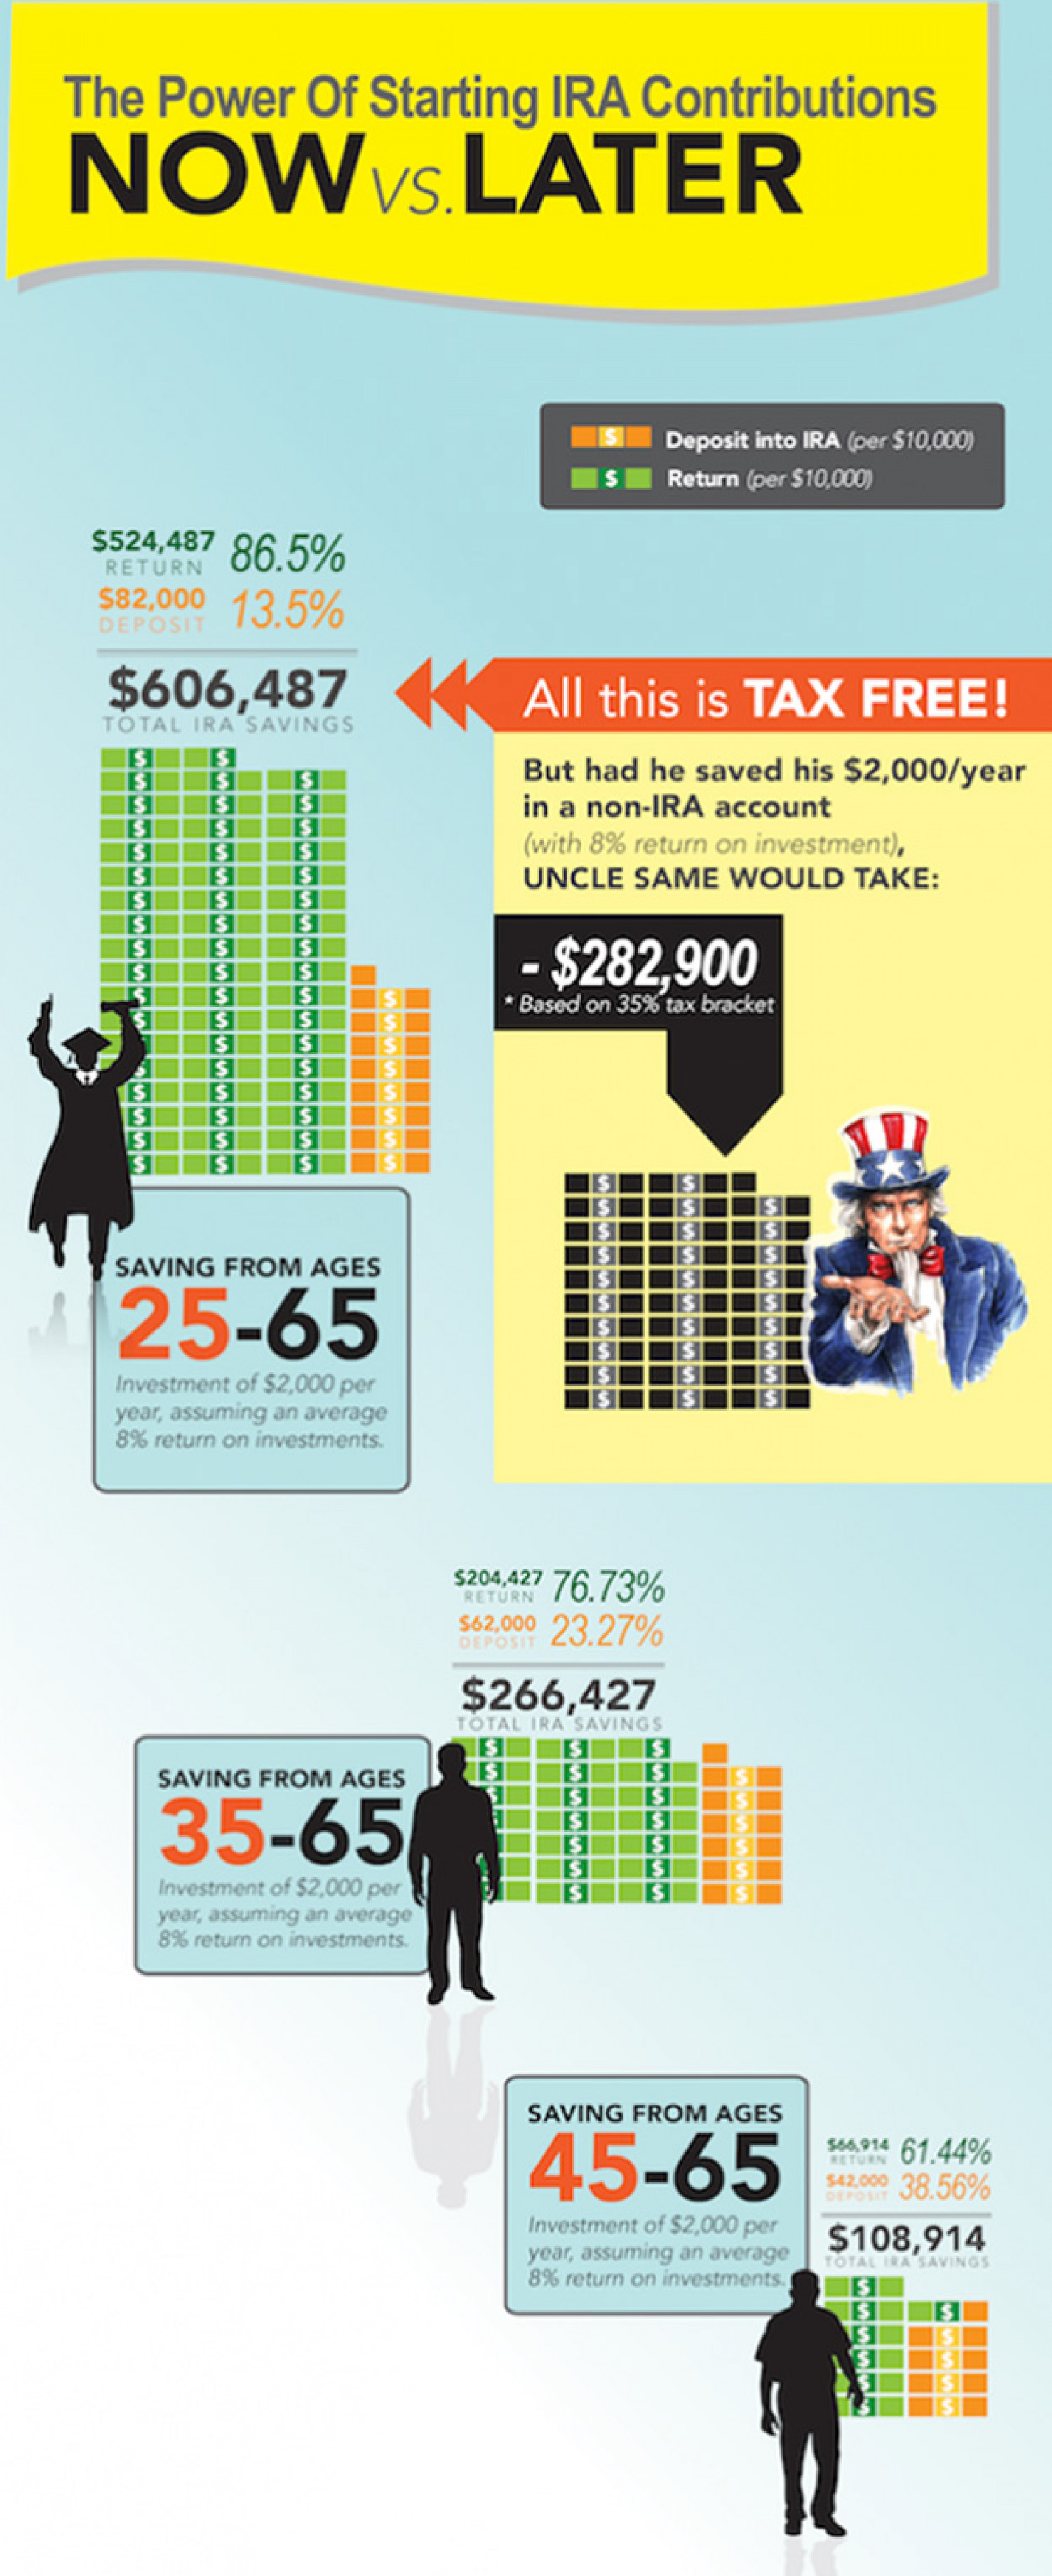 The Power of Starting an IRA Infographic